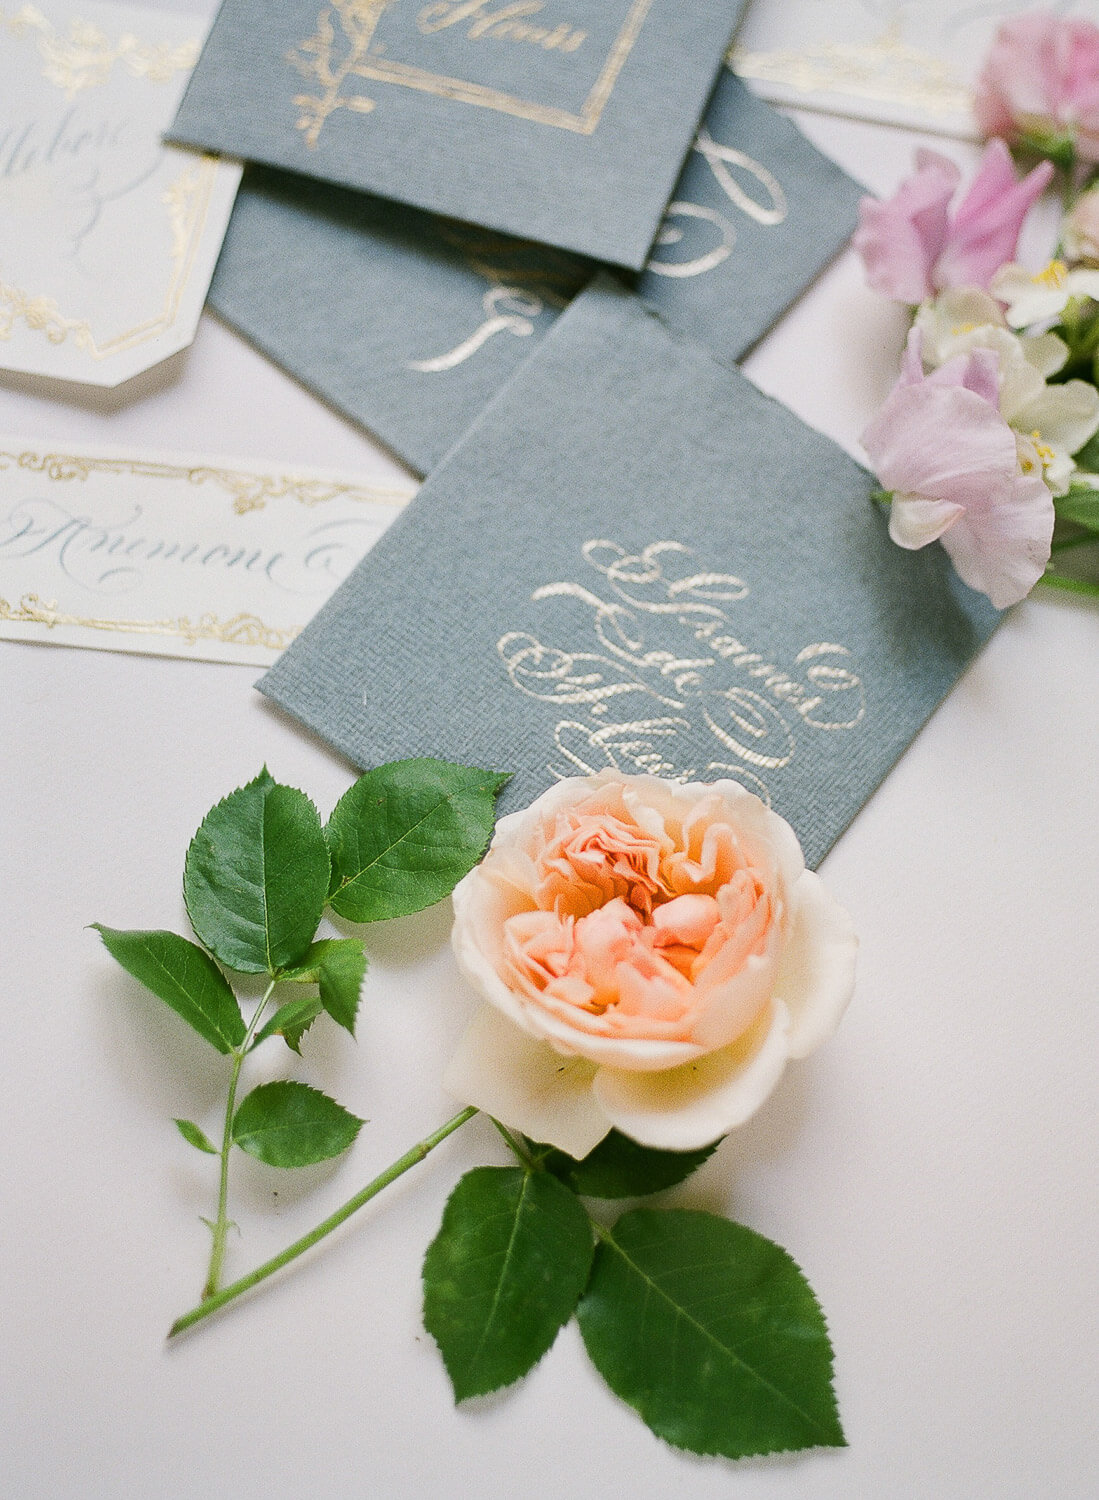 Wedding calligraphy invitations and David Austin rose by Portugal Wedding Photographer